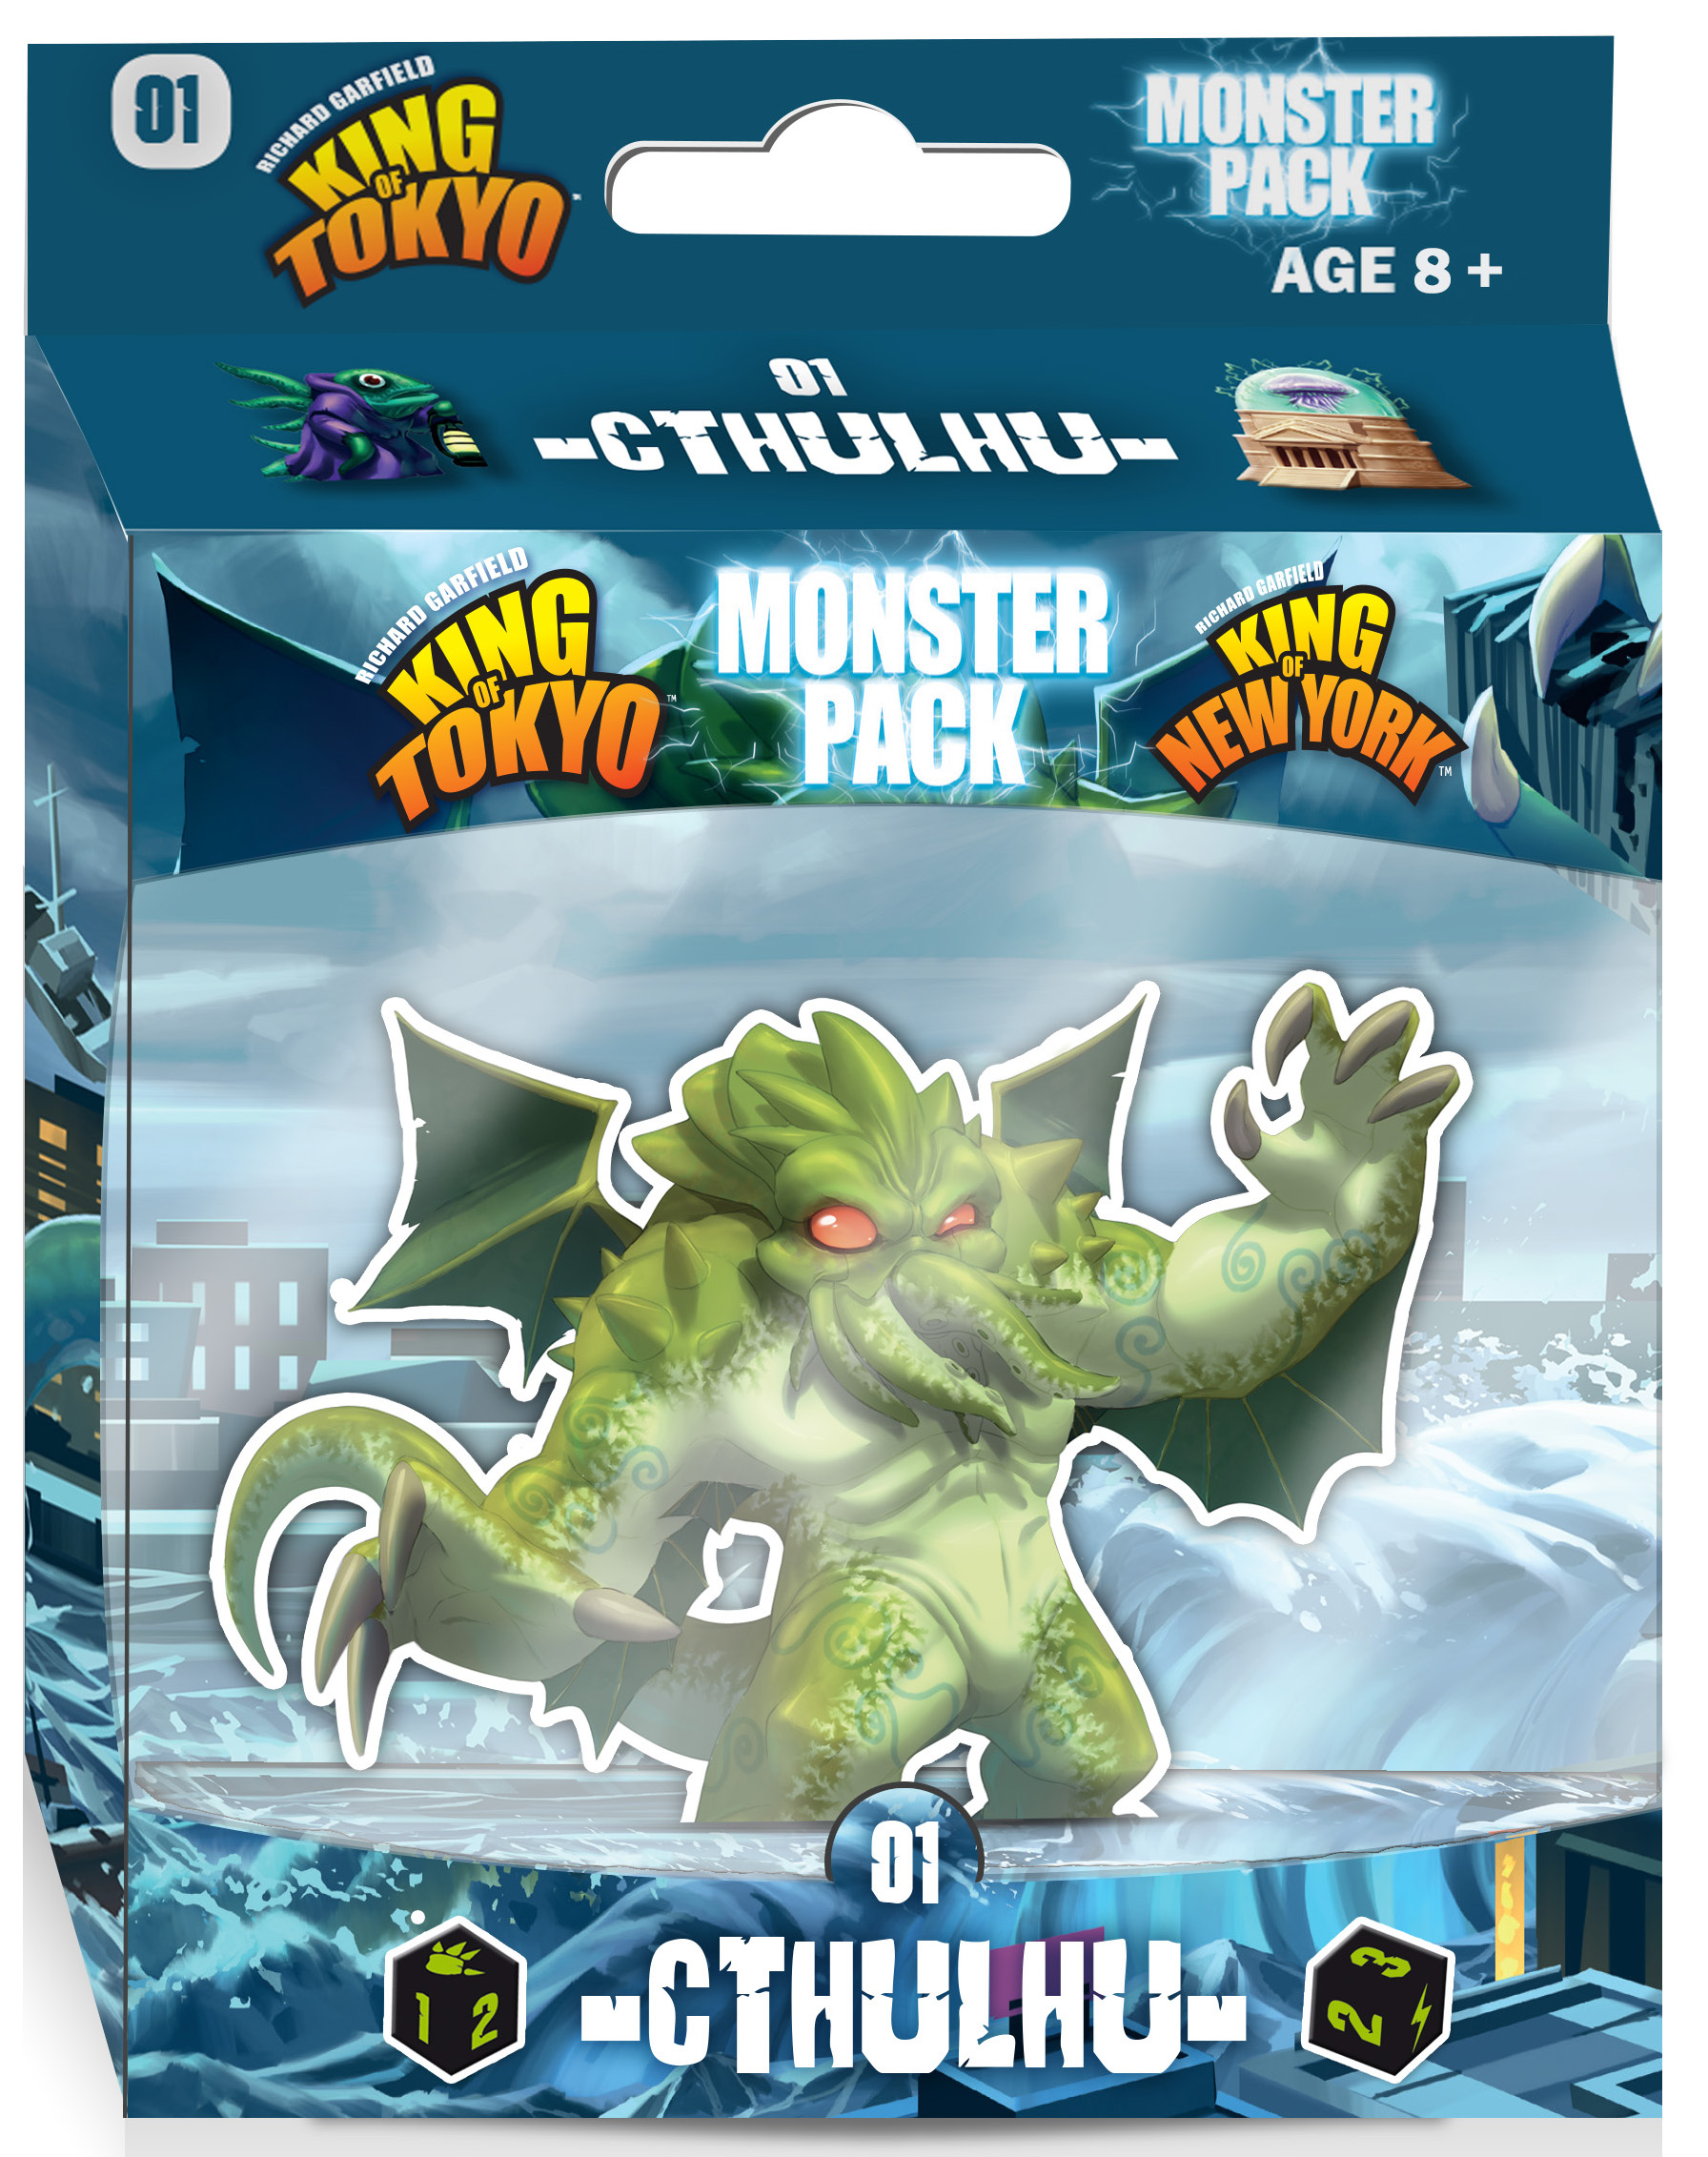 kot-monster-pack-iello-couv-jeu-de-societe-ludovox